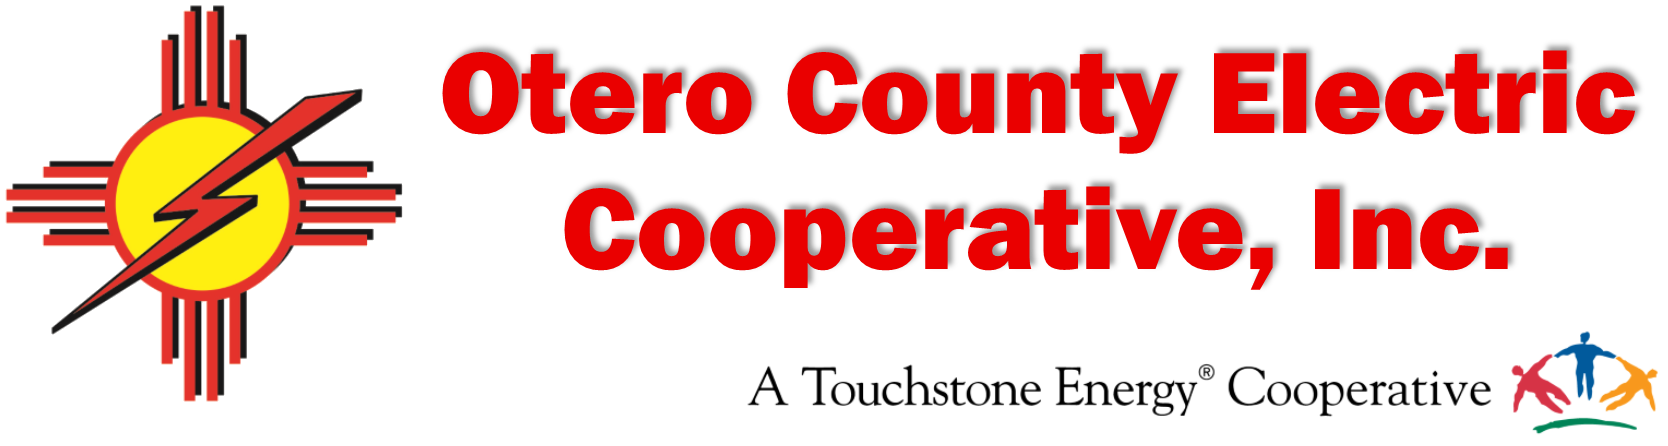 Otero County Electric Cooperative, Inc. Logo